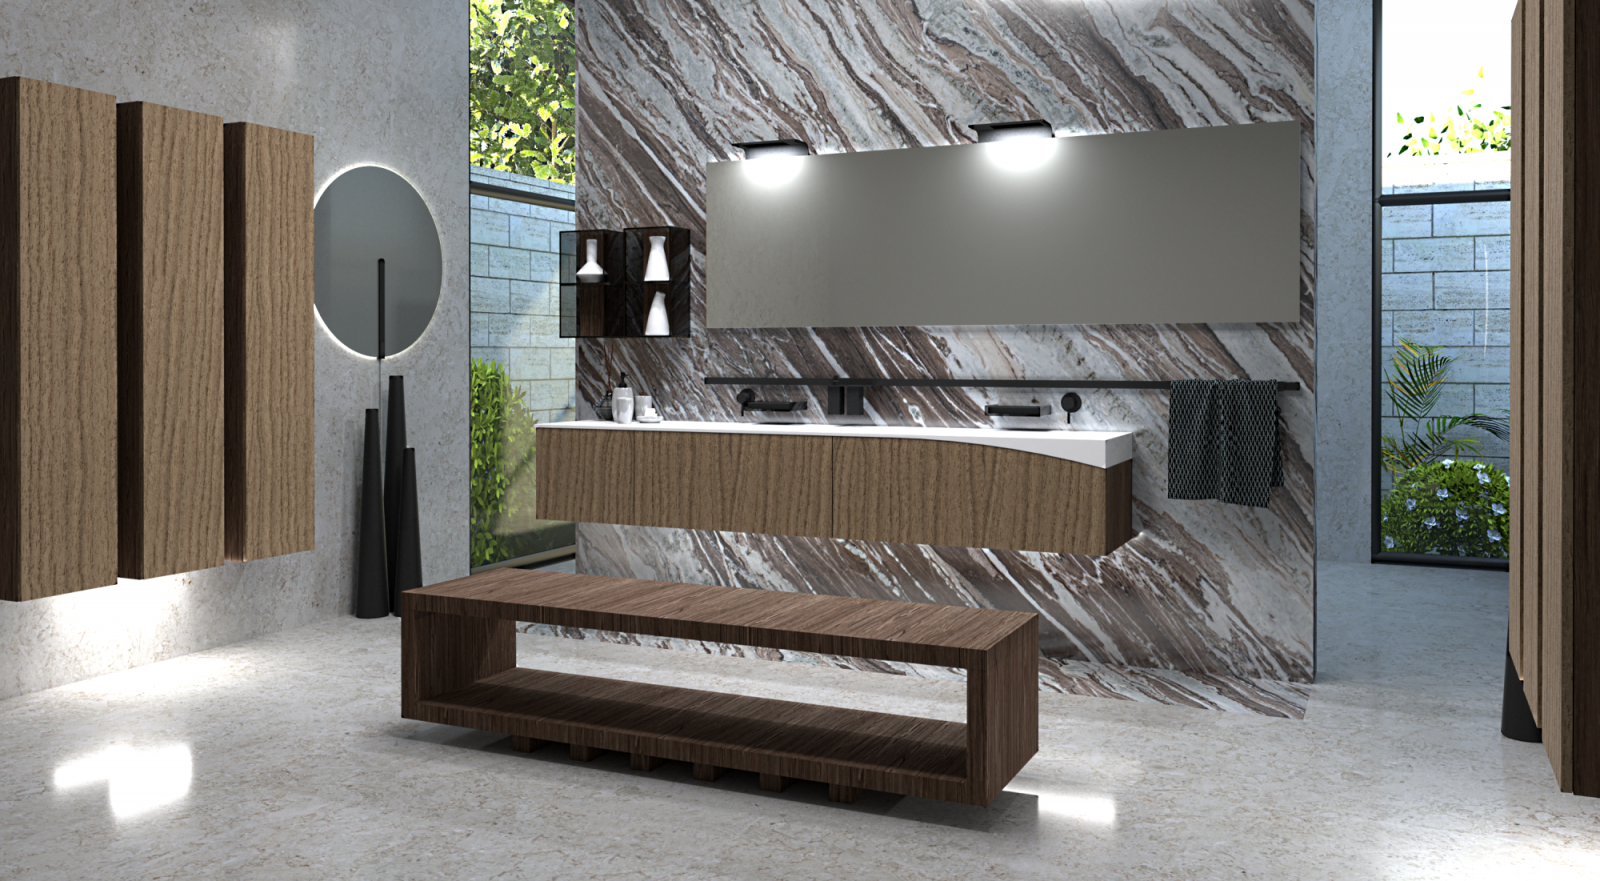 Bathroom - 3Ds Max - ART